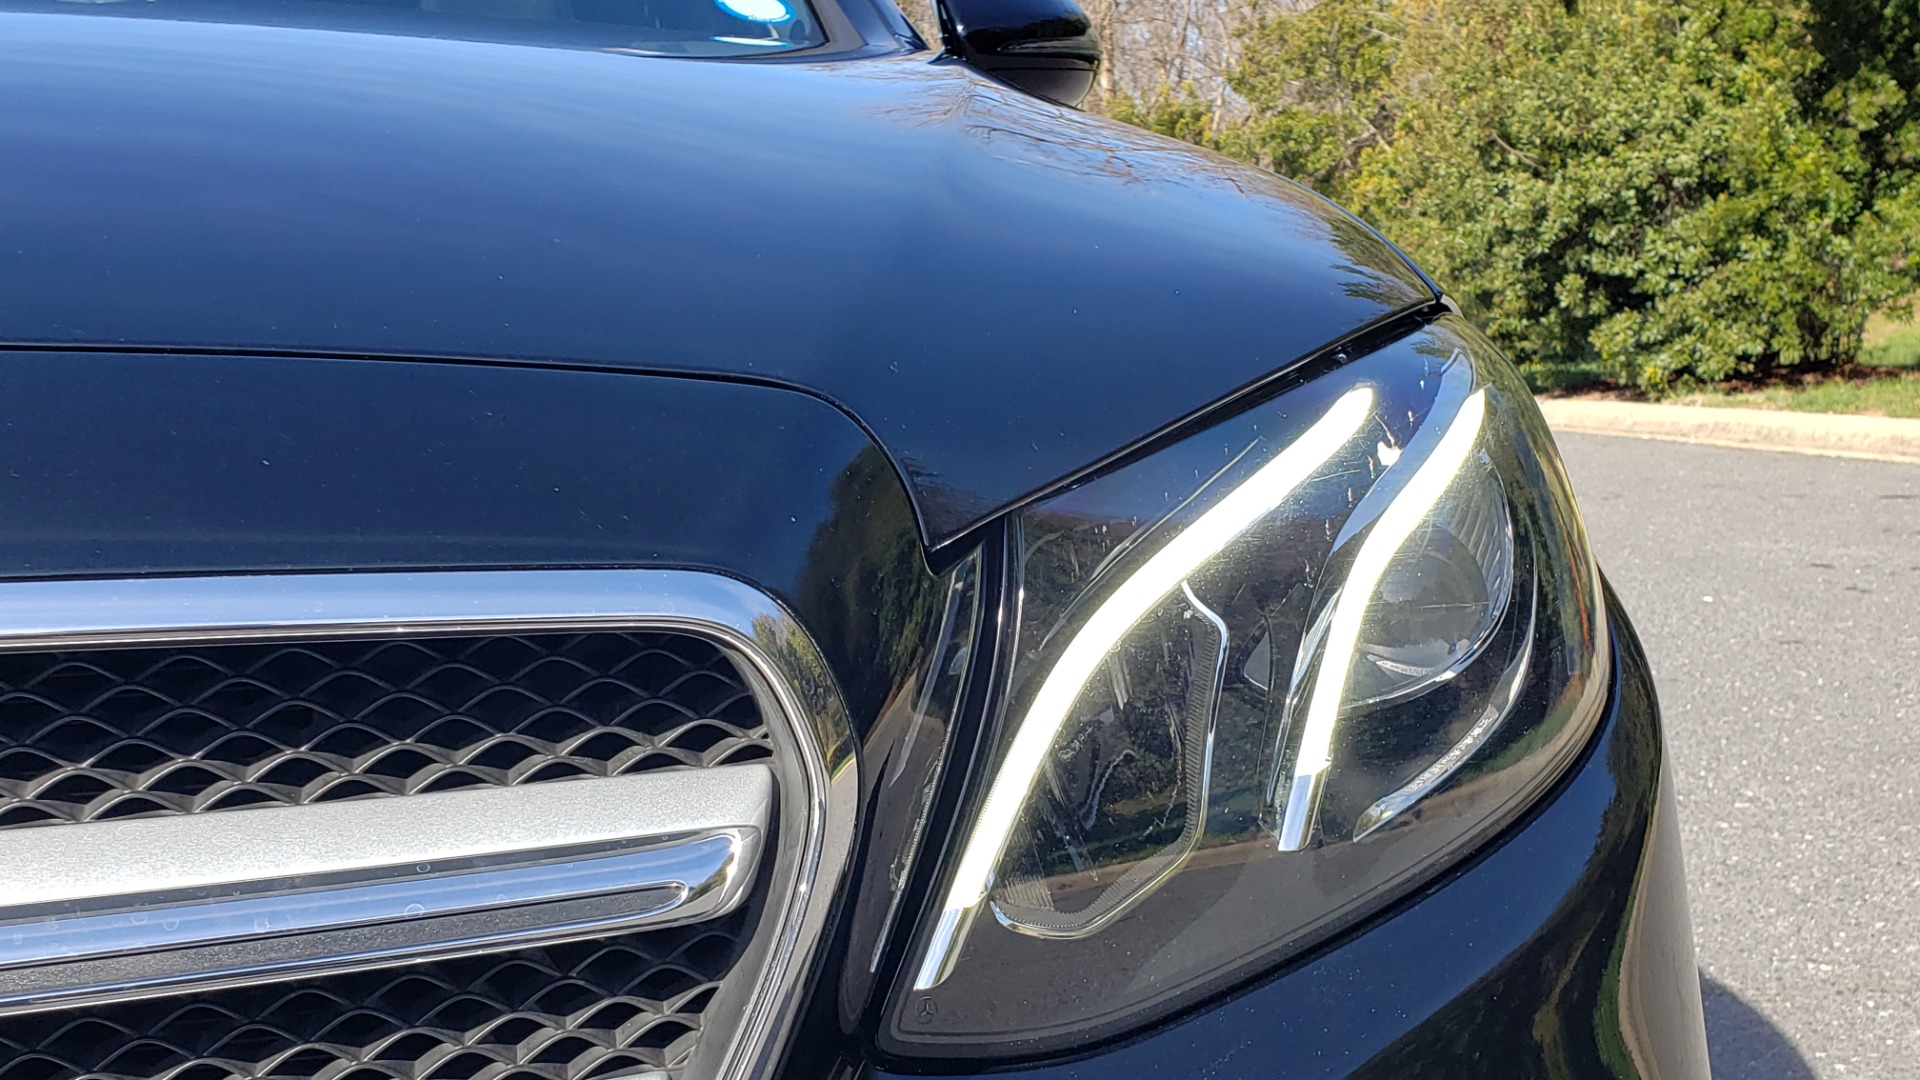 Used 2017 Mercedes-Benz E-CLASS E 300 PREMIUM / NAV / SUNROOF / BURMESTER / HTD STS / REARVIEW for sale Sold at Formula Imports in Charlotte NC 28227 23